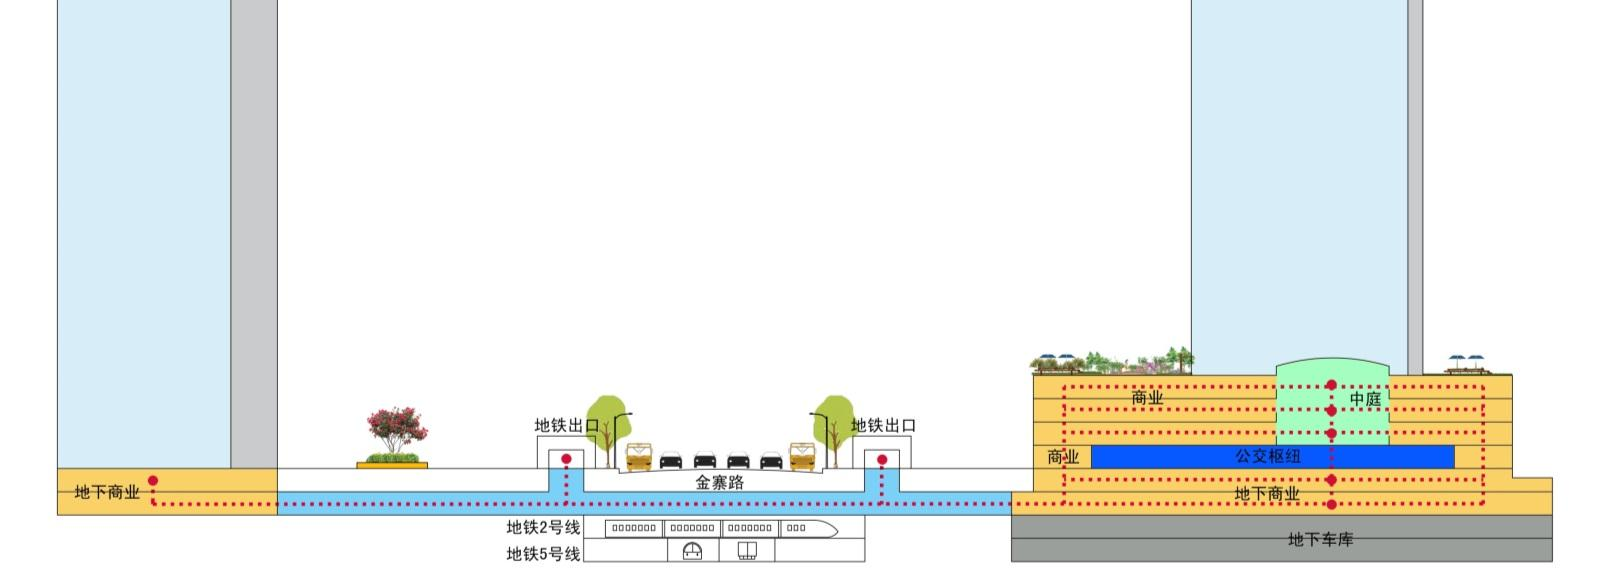 Heifei SanXiaoKou Area Trasportation and Land Use Planning Integration Study